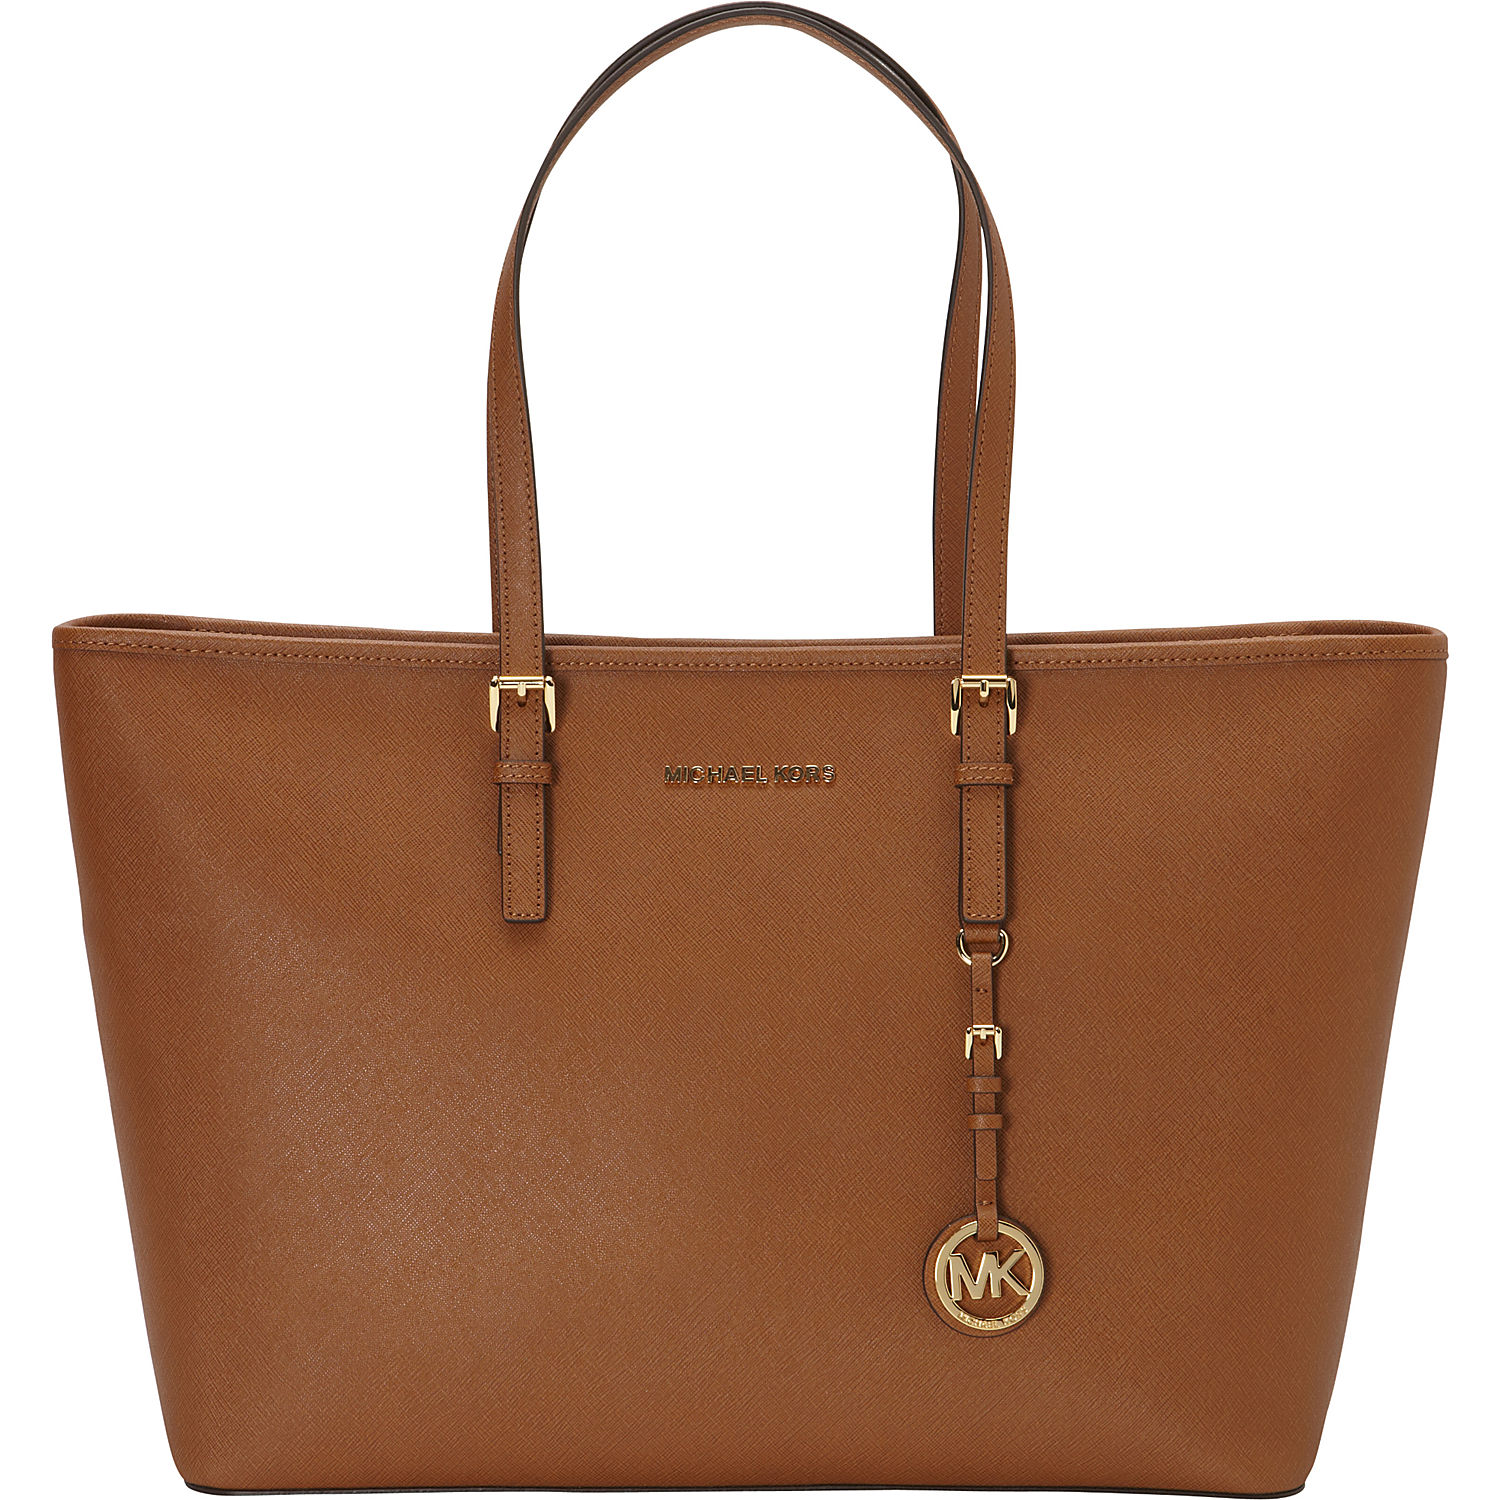 3edae4bff777 Ebags Handbags Michael Kors   Stanford Center for Opportunity Policy ...